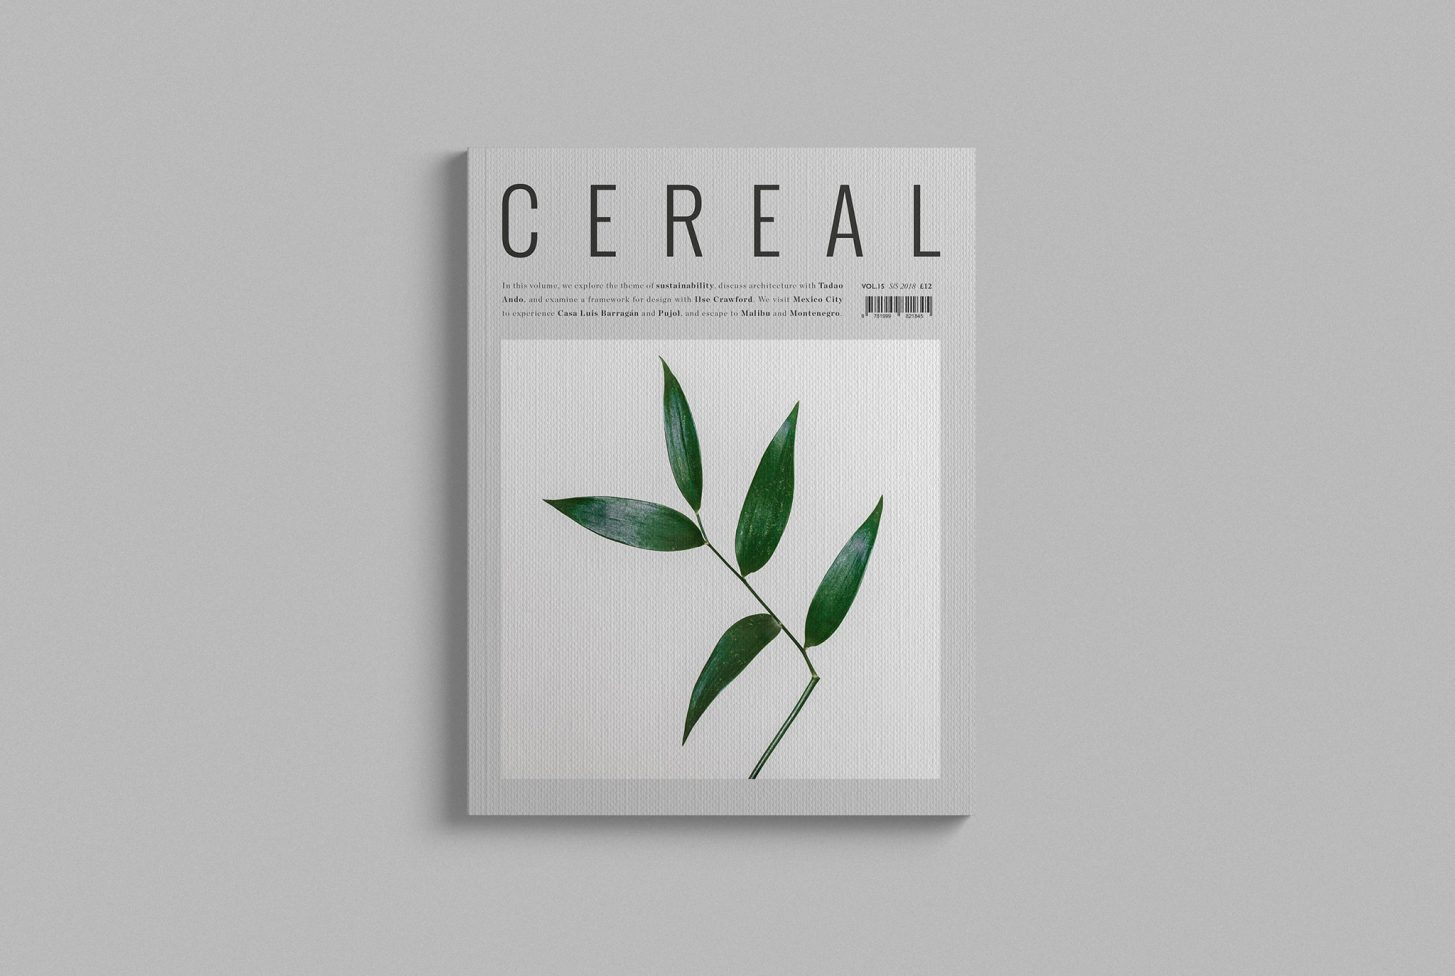 Cereal-Volume-15_cover-1455x976.jpg